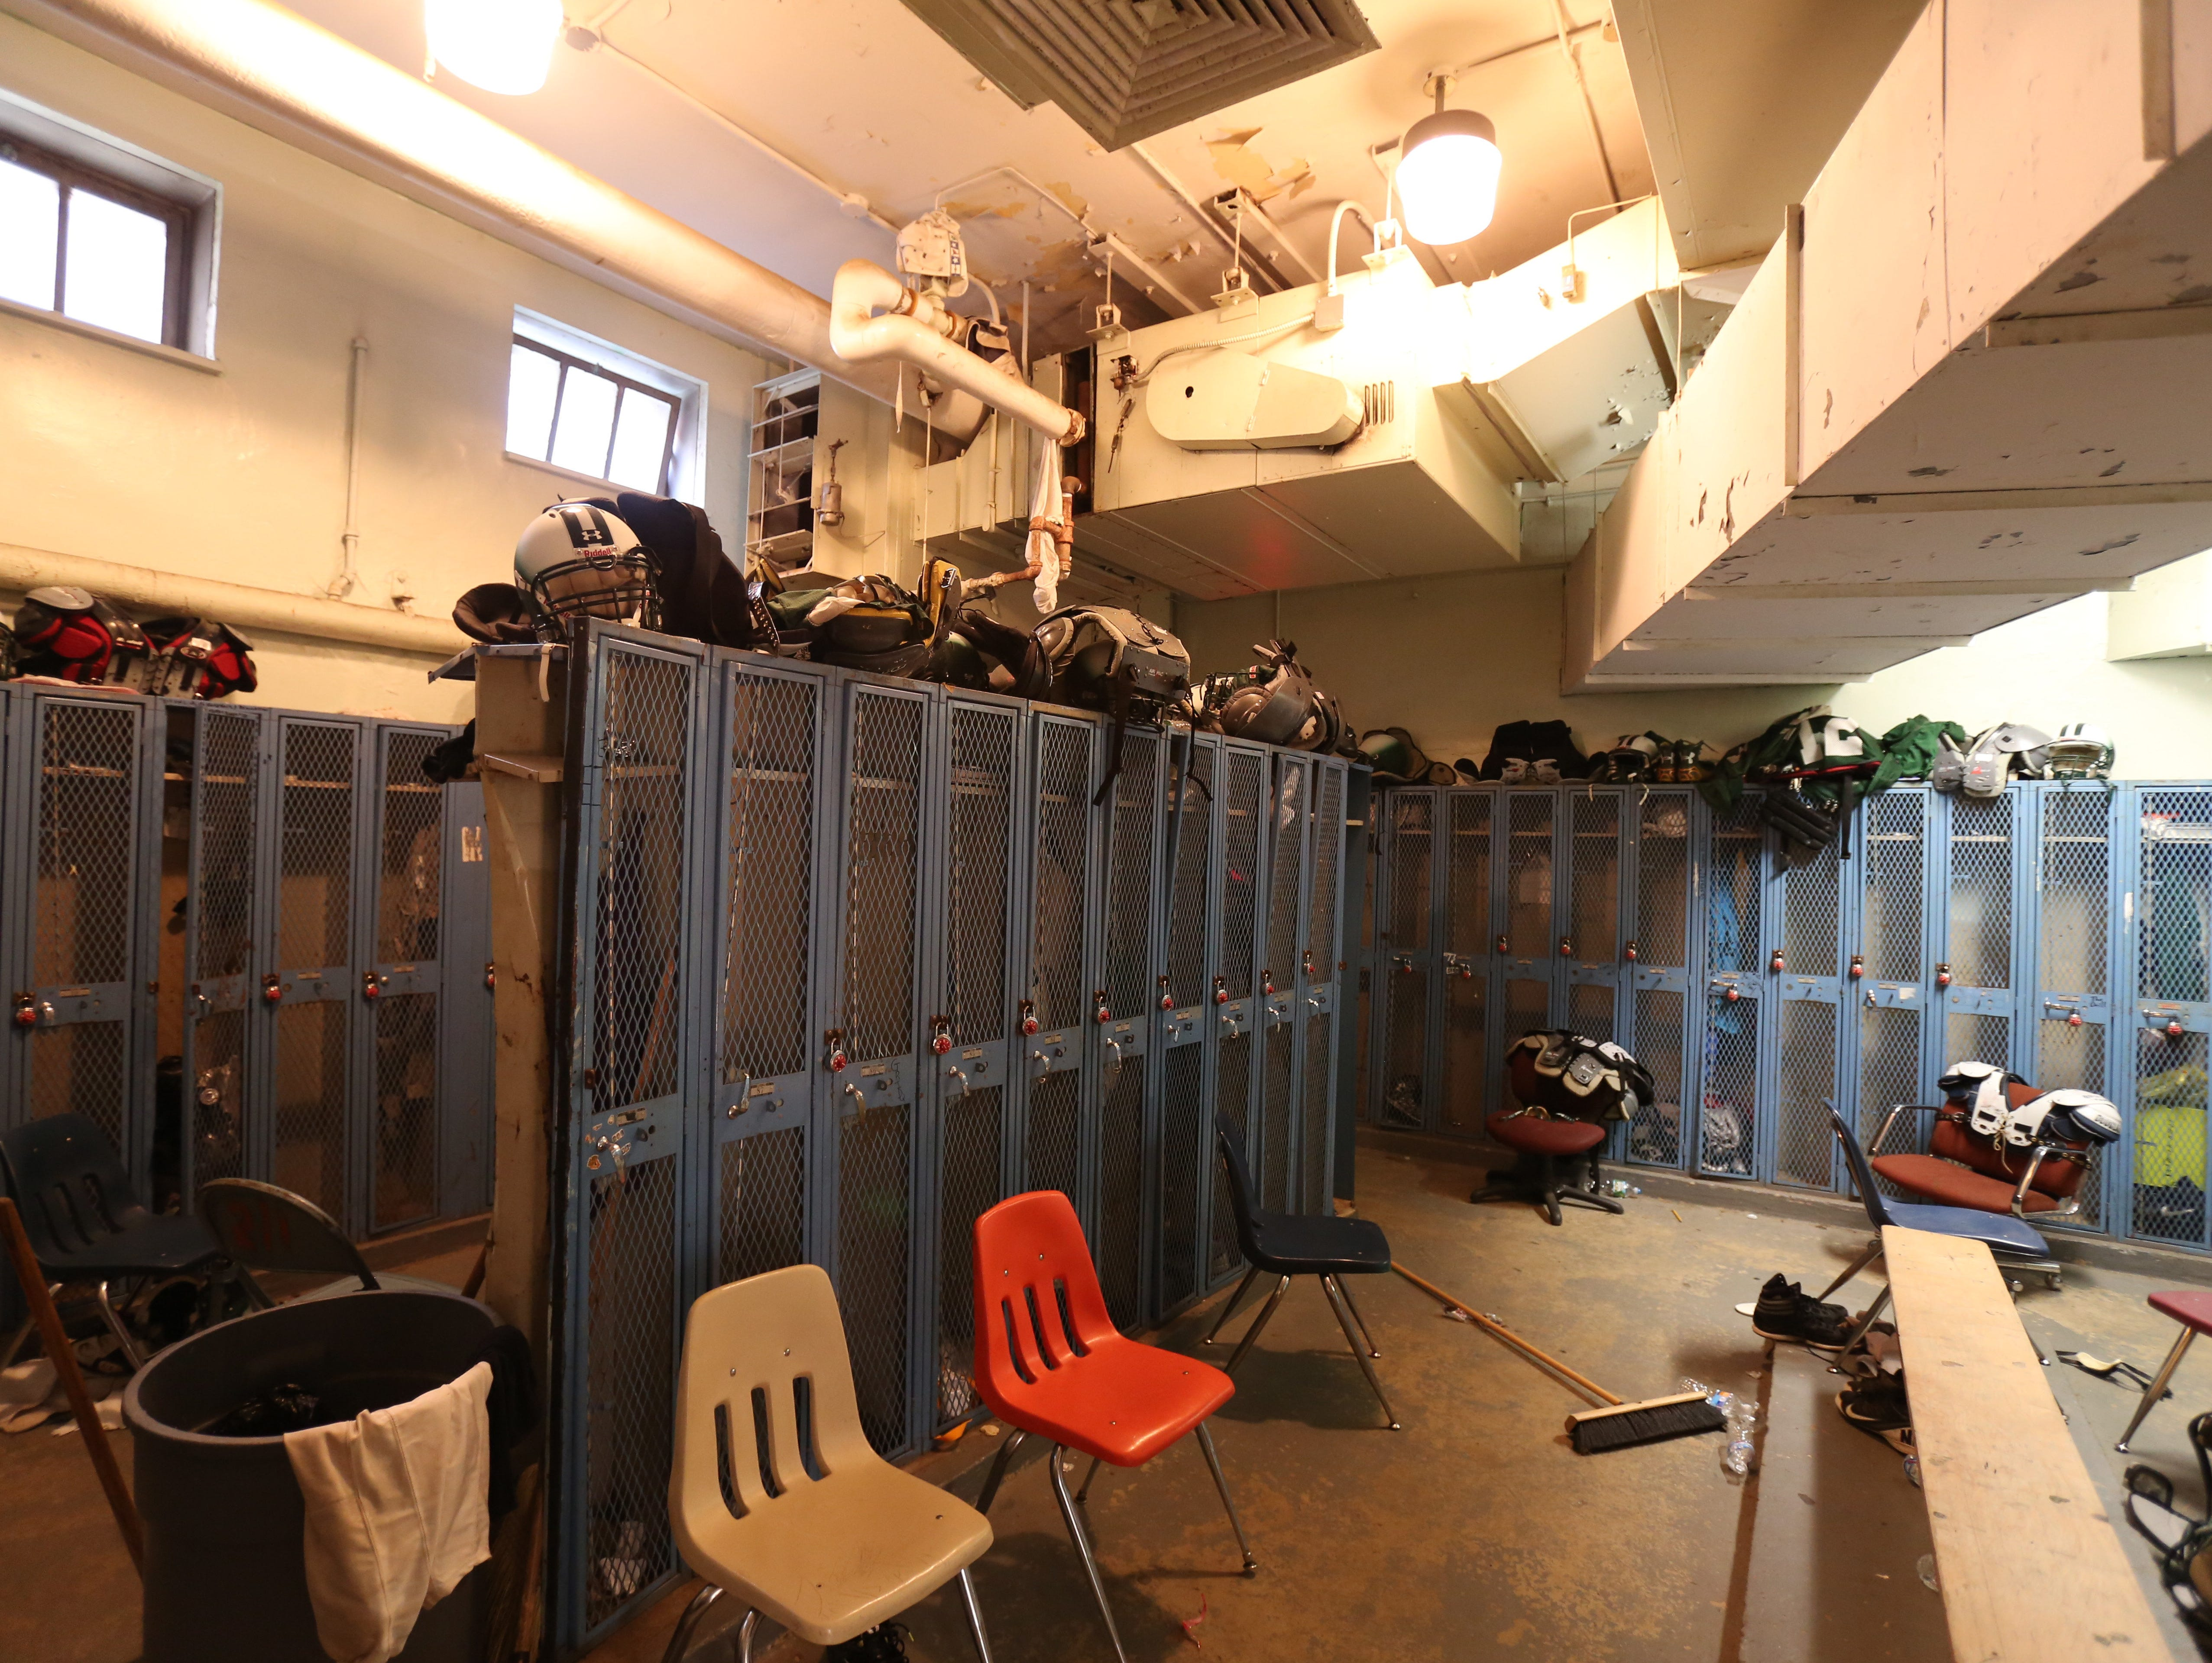 The crowded, poorly lit locker room at Gorton High School in Yonkers. Gorton would be rebuilt under a $2 billion proposal.